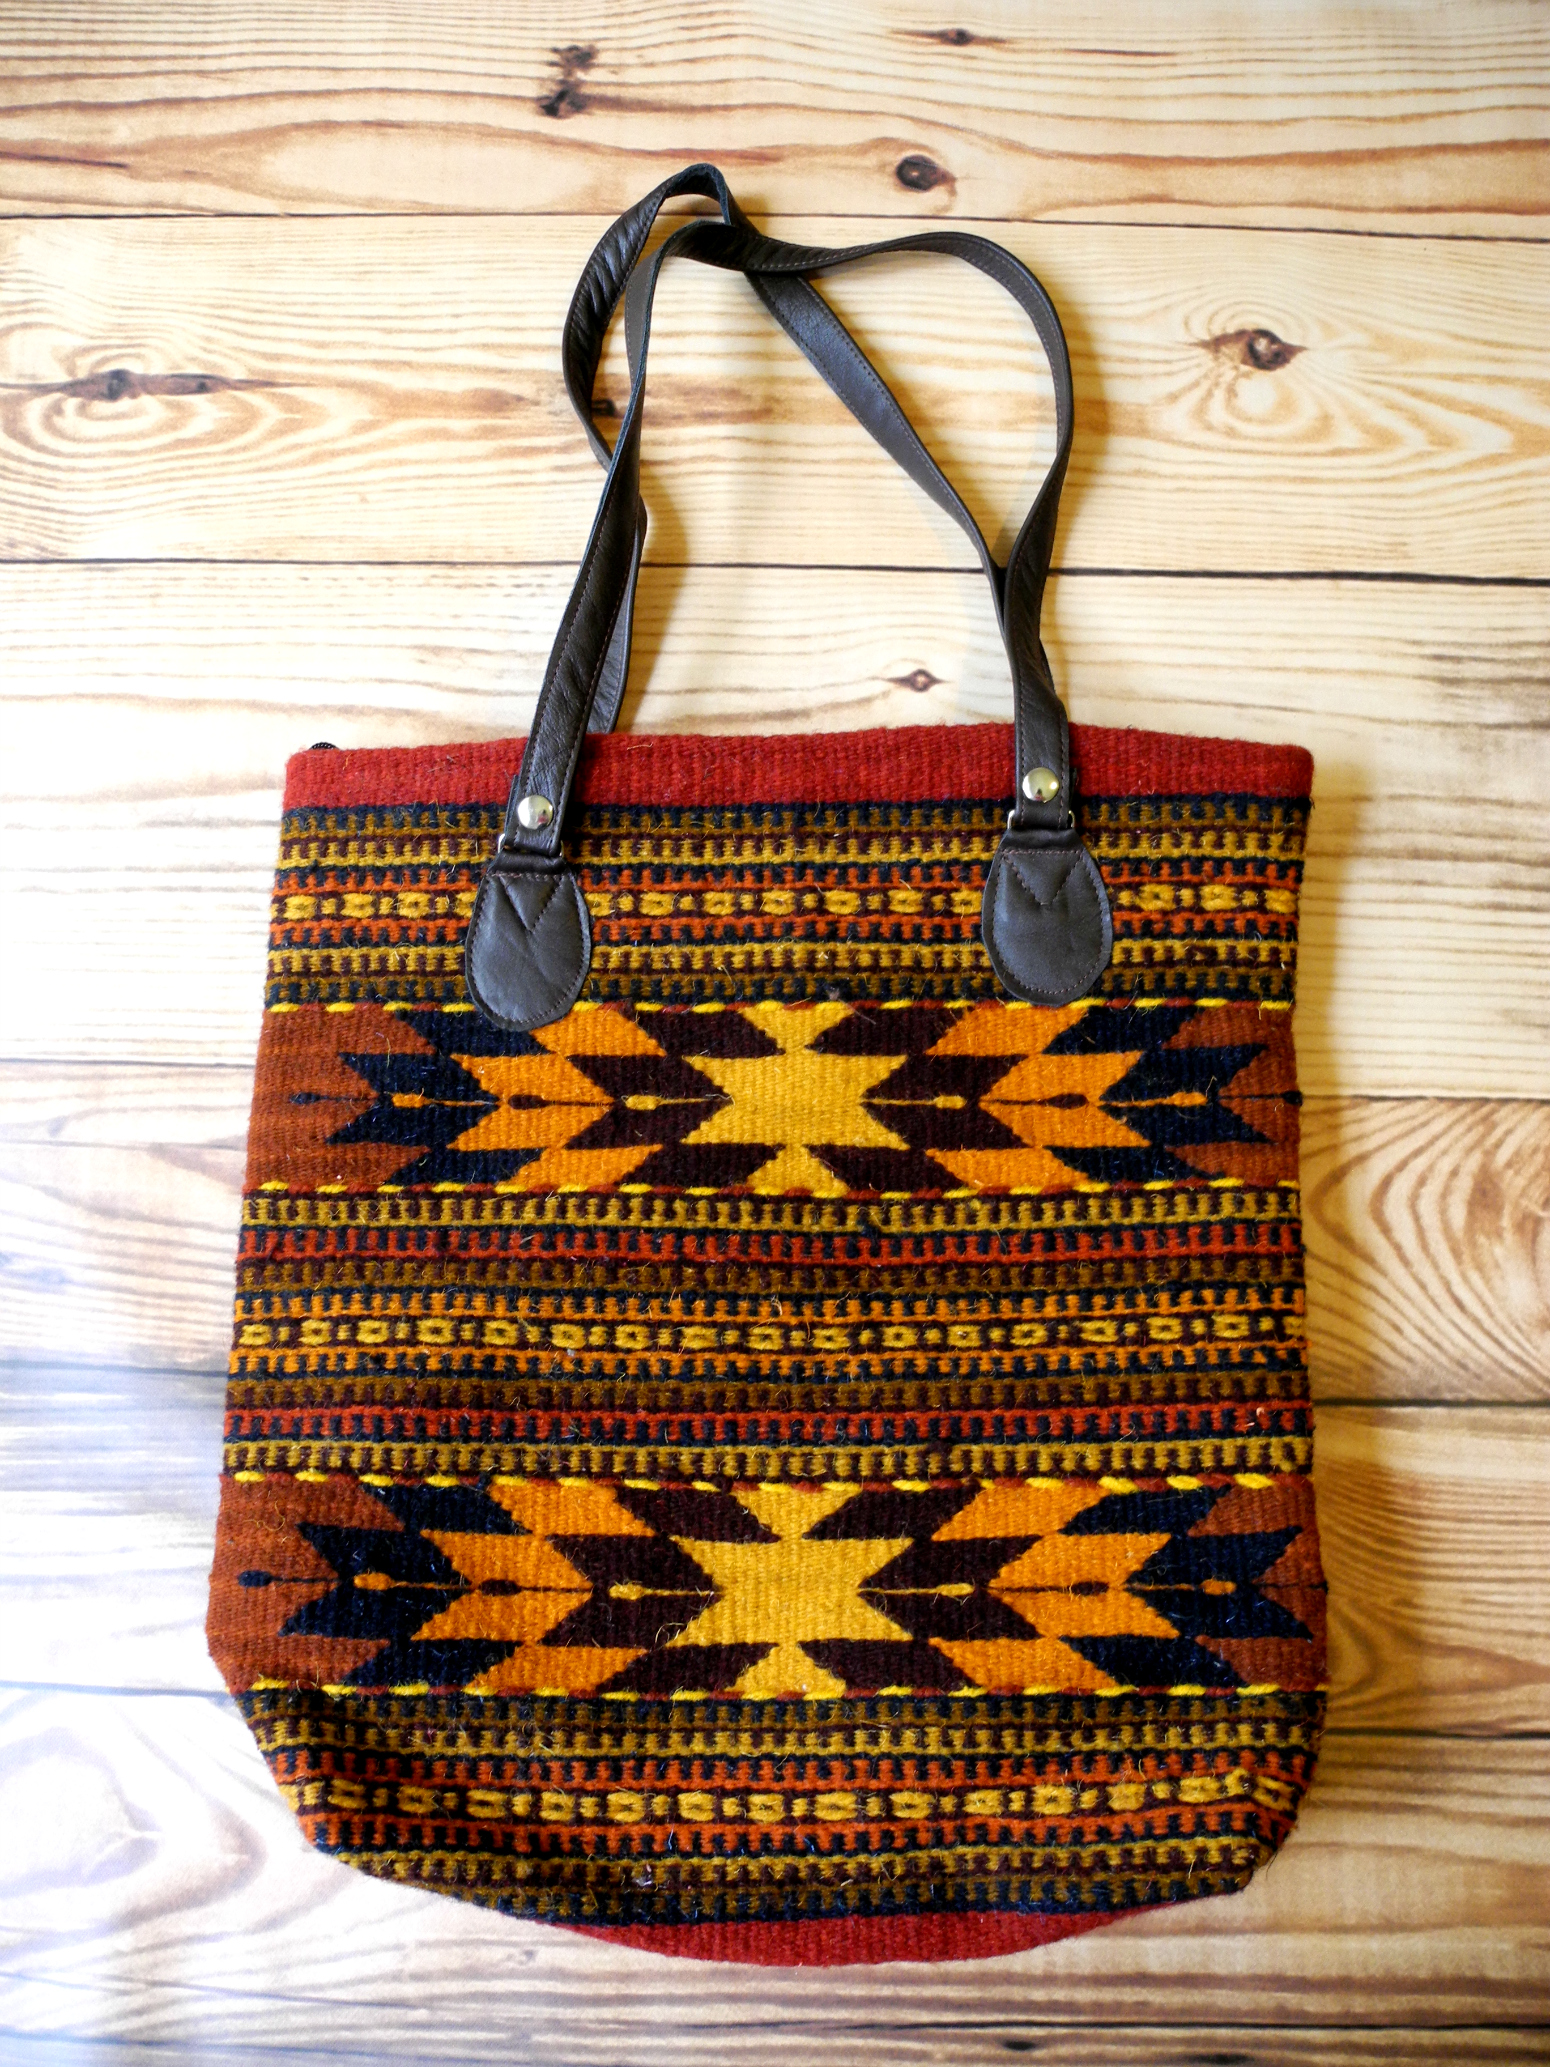 Hand Purse Patterns : ... Bag Orange Hand Woven Wool Shoulder Purse Aztec Diamond Pattern